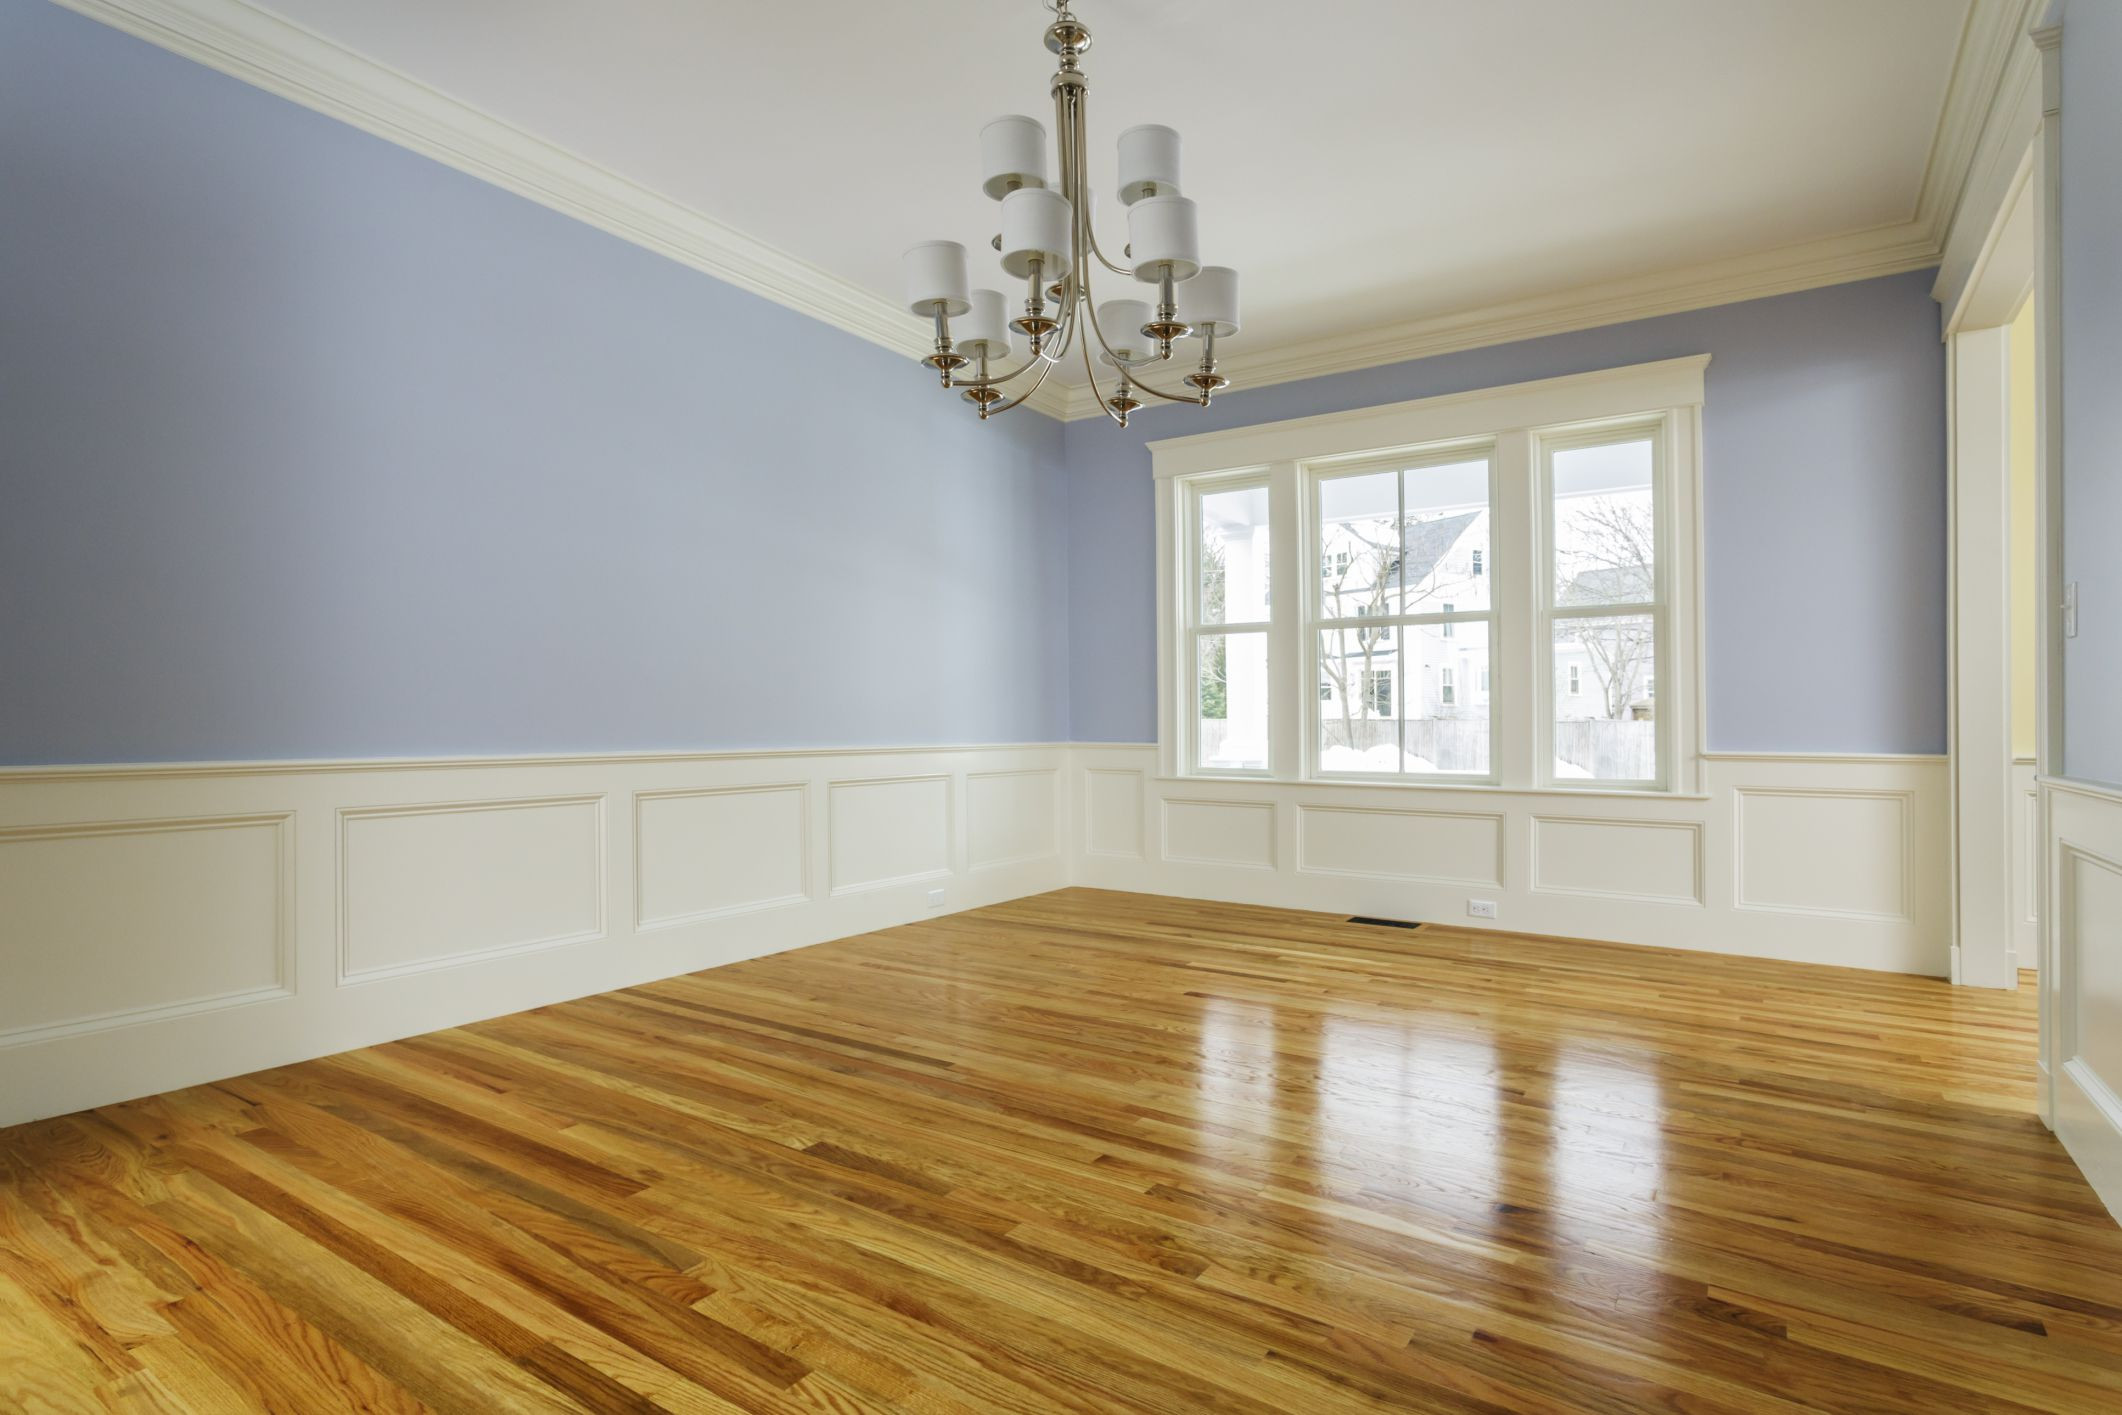 Cheap Hardwood Flooring atlanta Of the Cost to Refinish Hardwood Floors within 168686572 Highres 56a2fd773df78cf7727b6cb3